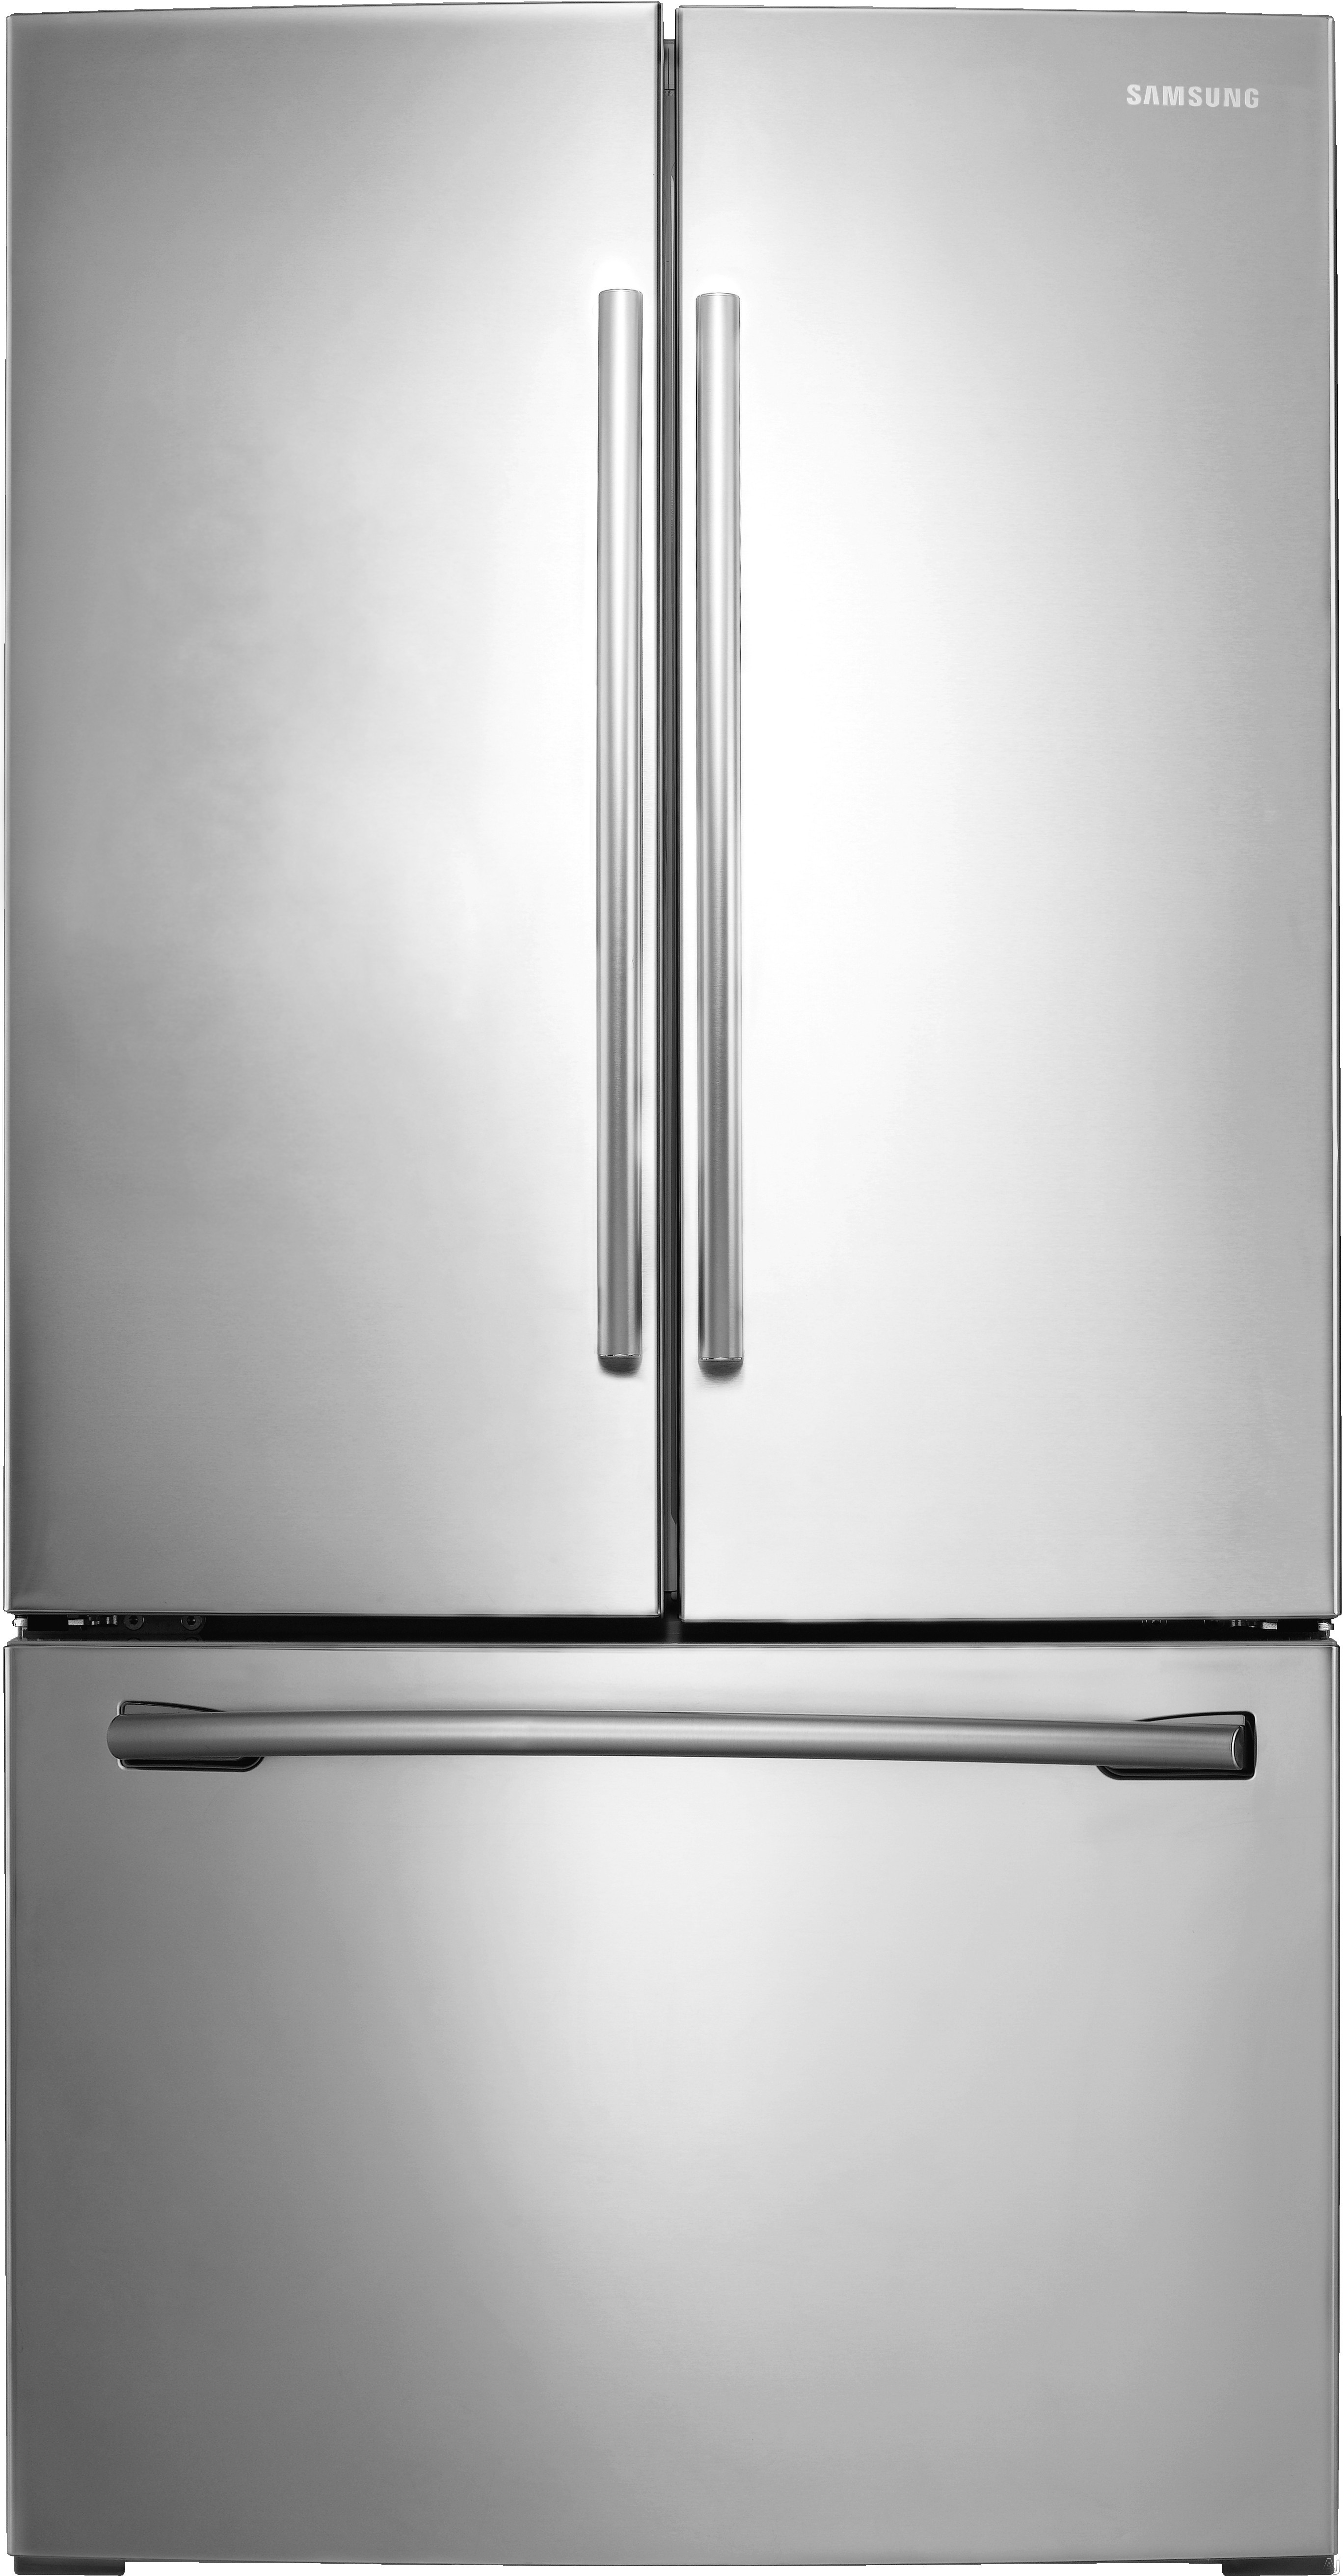 Samsung RF26HFEN 36 Inch French Door Refrigerator with Twin Cooling, Filtered Ice Maker, Power Cool, Power Freeze, 6 Gallon-Capacity Door Bins, ENERGY STAR, Spill Proof Glass Shelves, Surround Air Flow and 25.5 cu. ft. Capacity